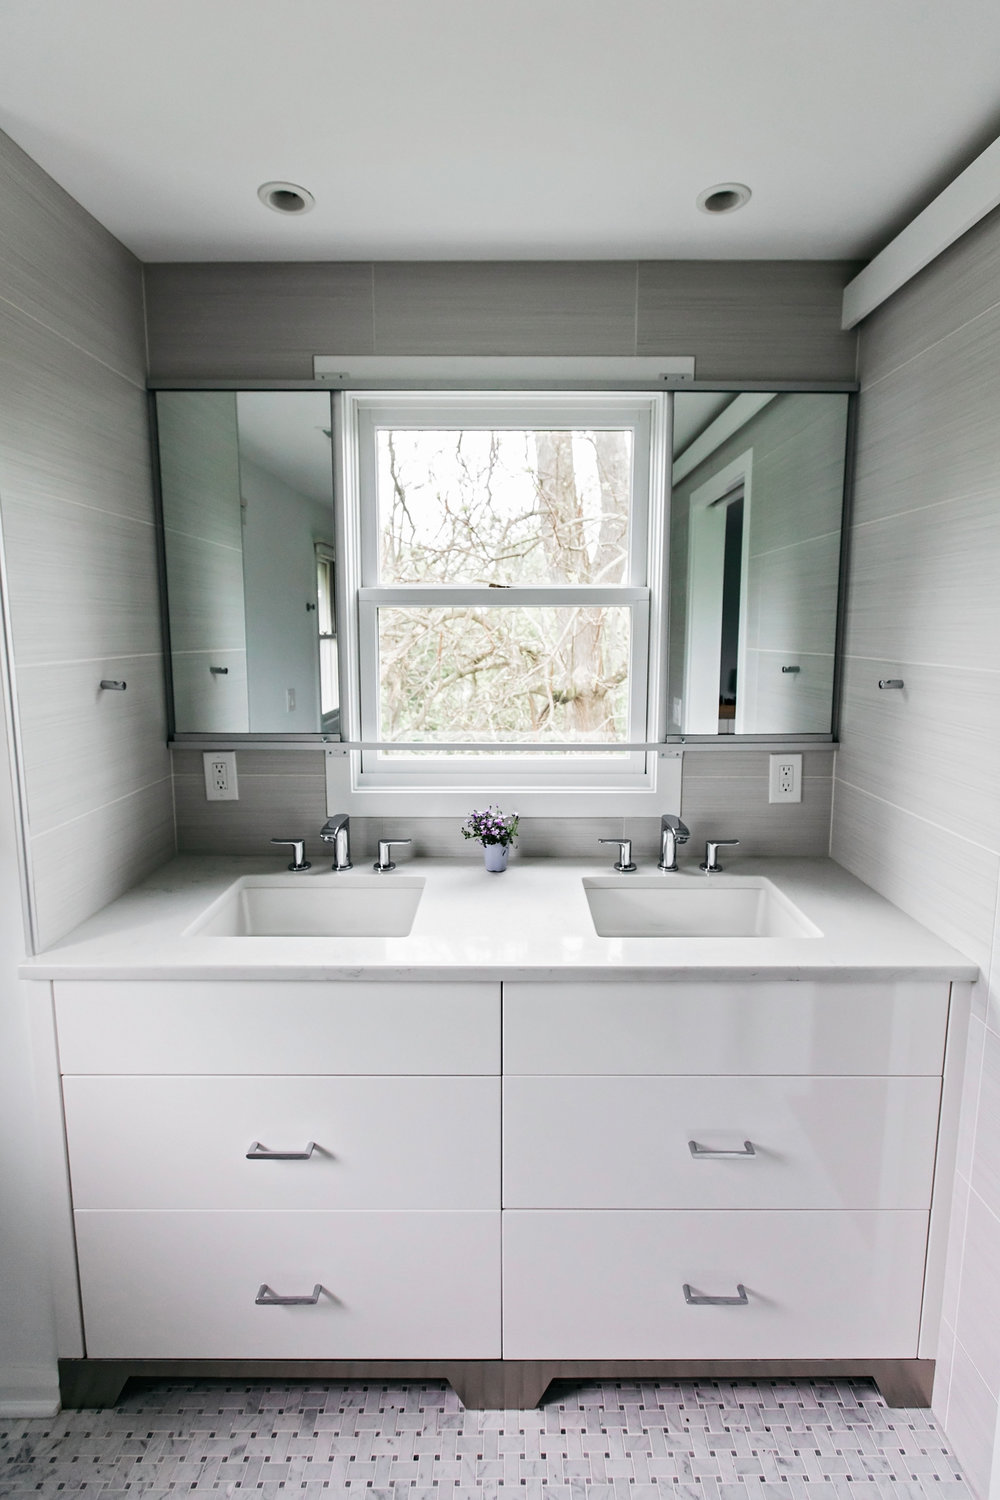 5.15.18 - Oliver Architecture - Chagrin Falls Residence Remodel-73_optimized.jpg